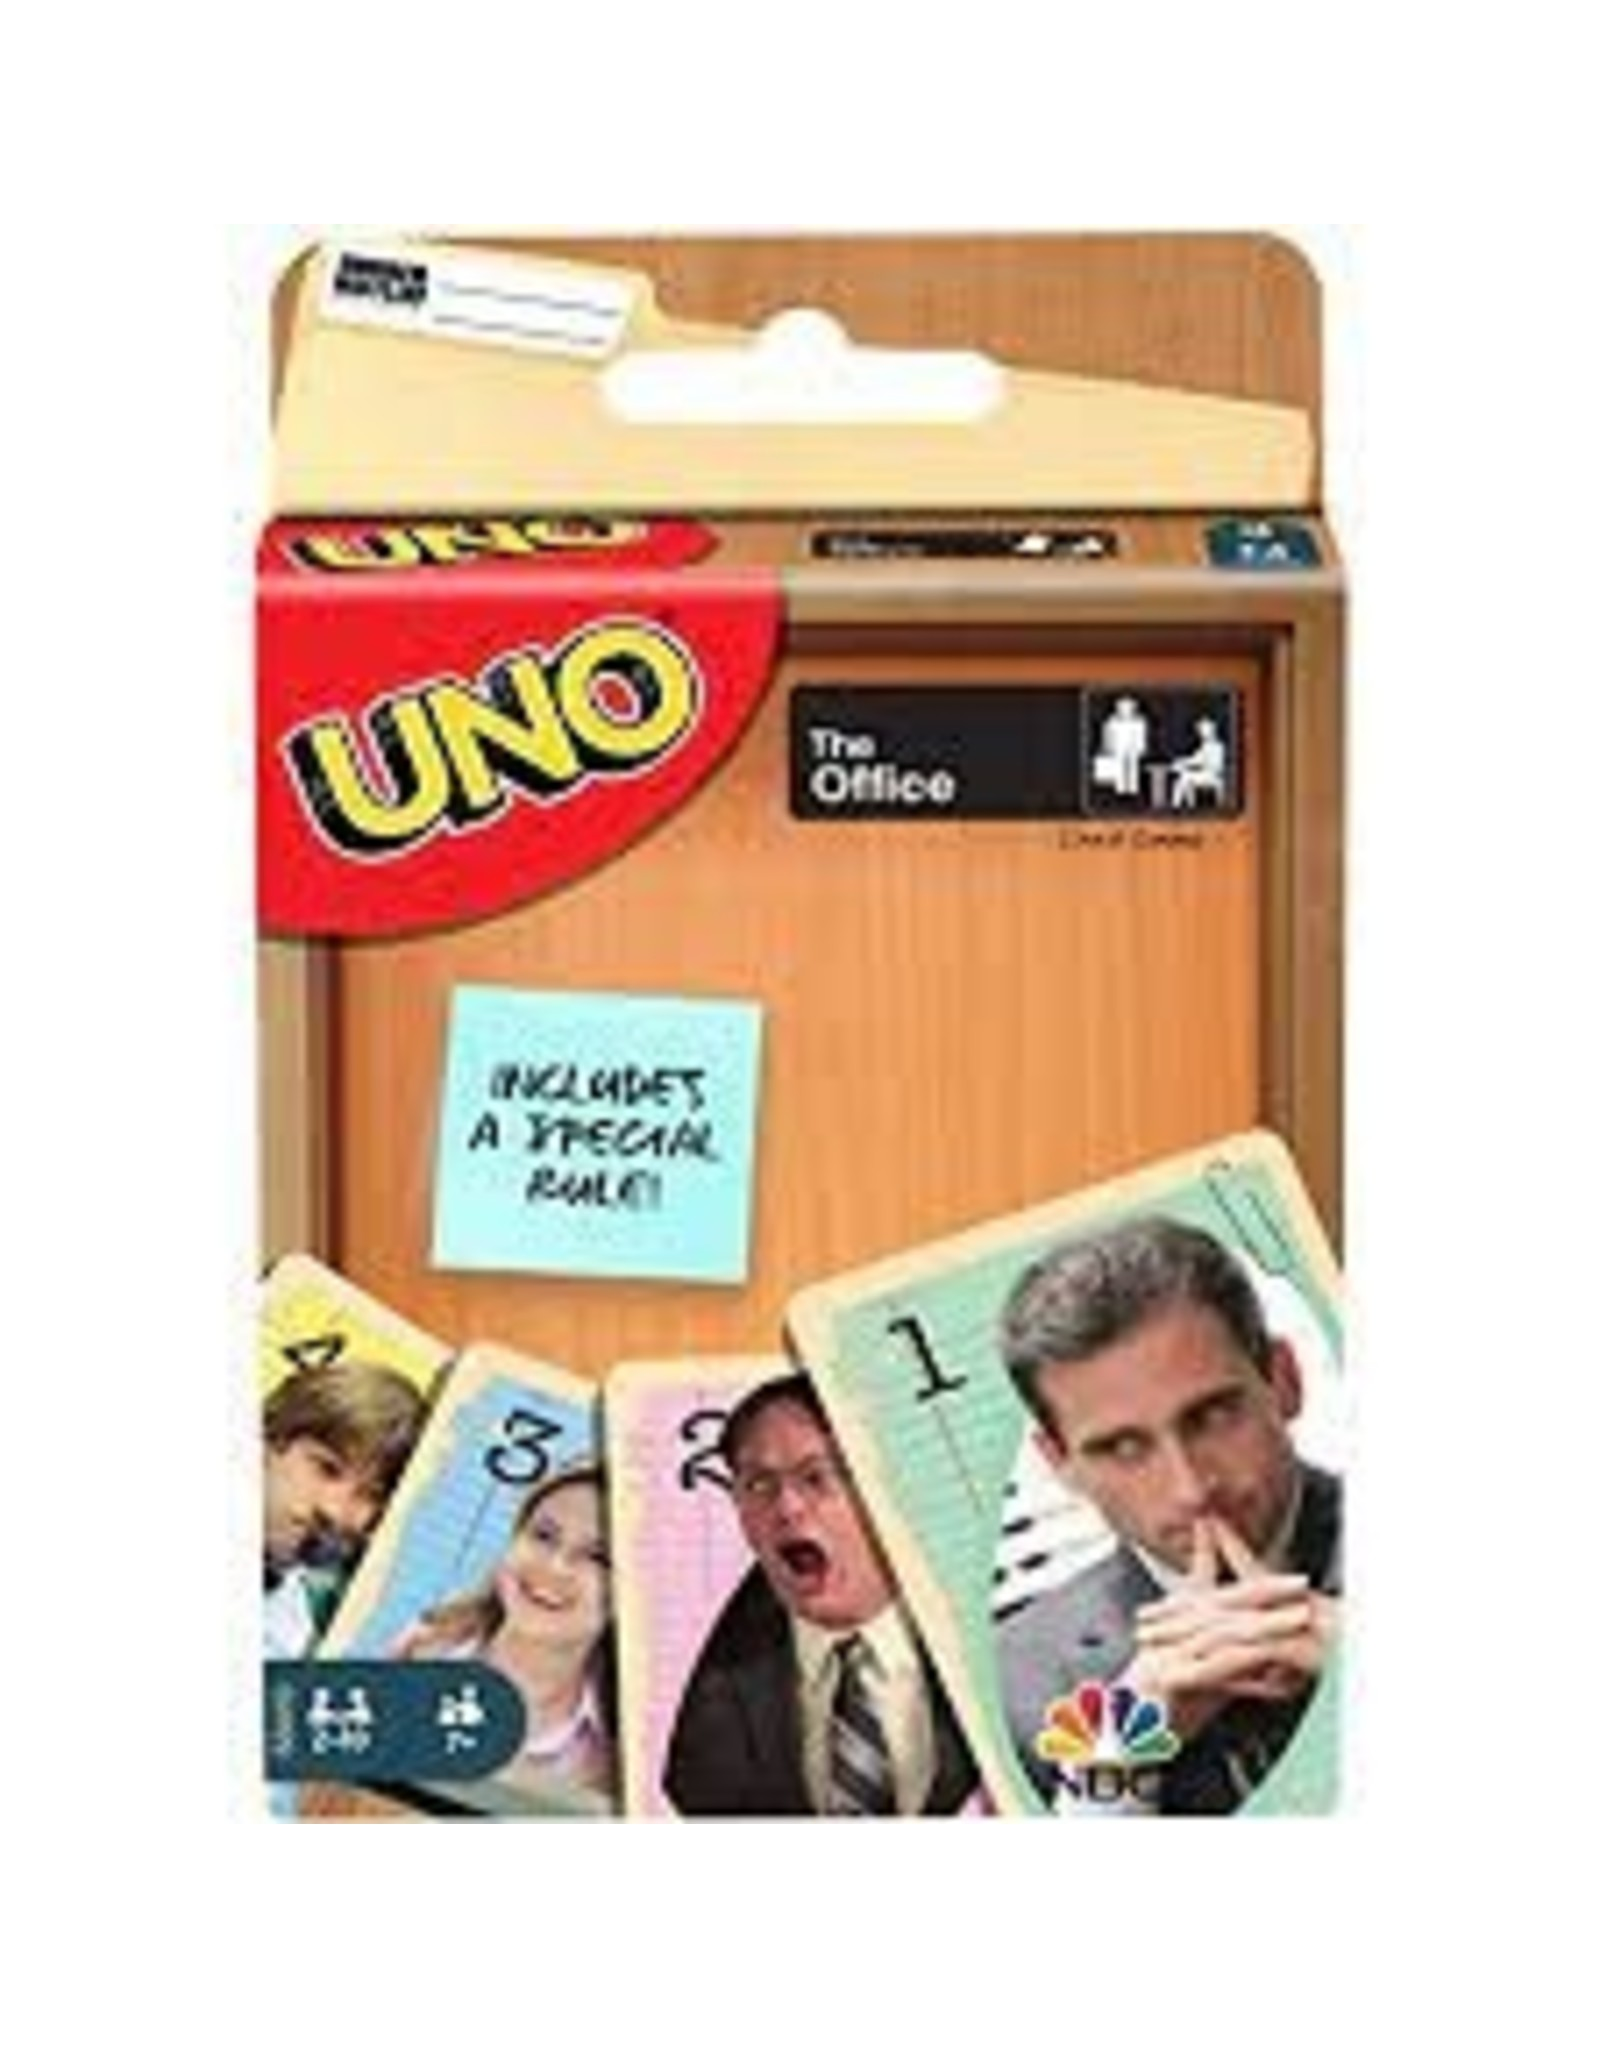 Mattel UNO: The Office